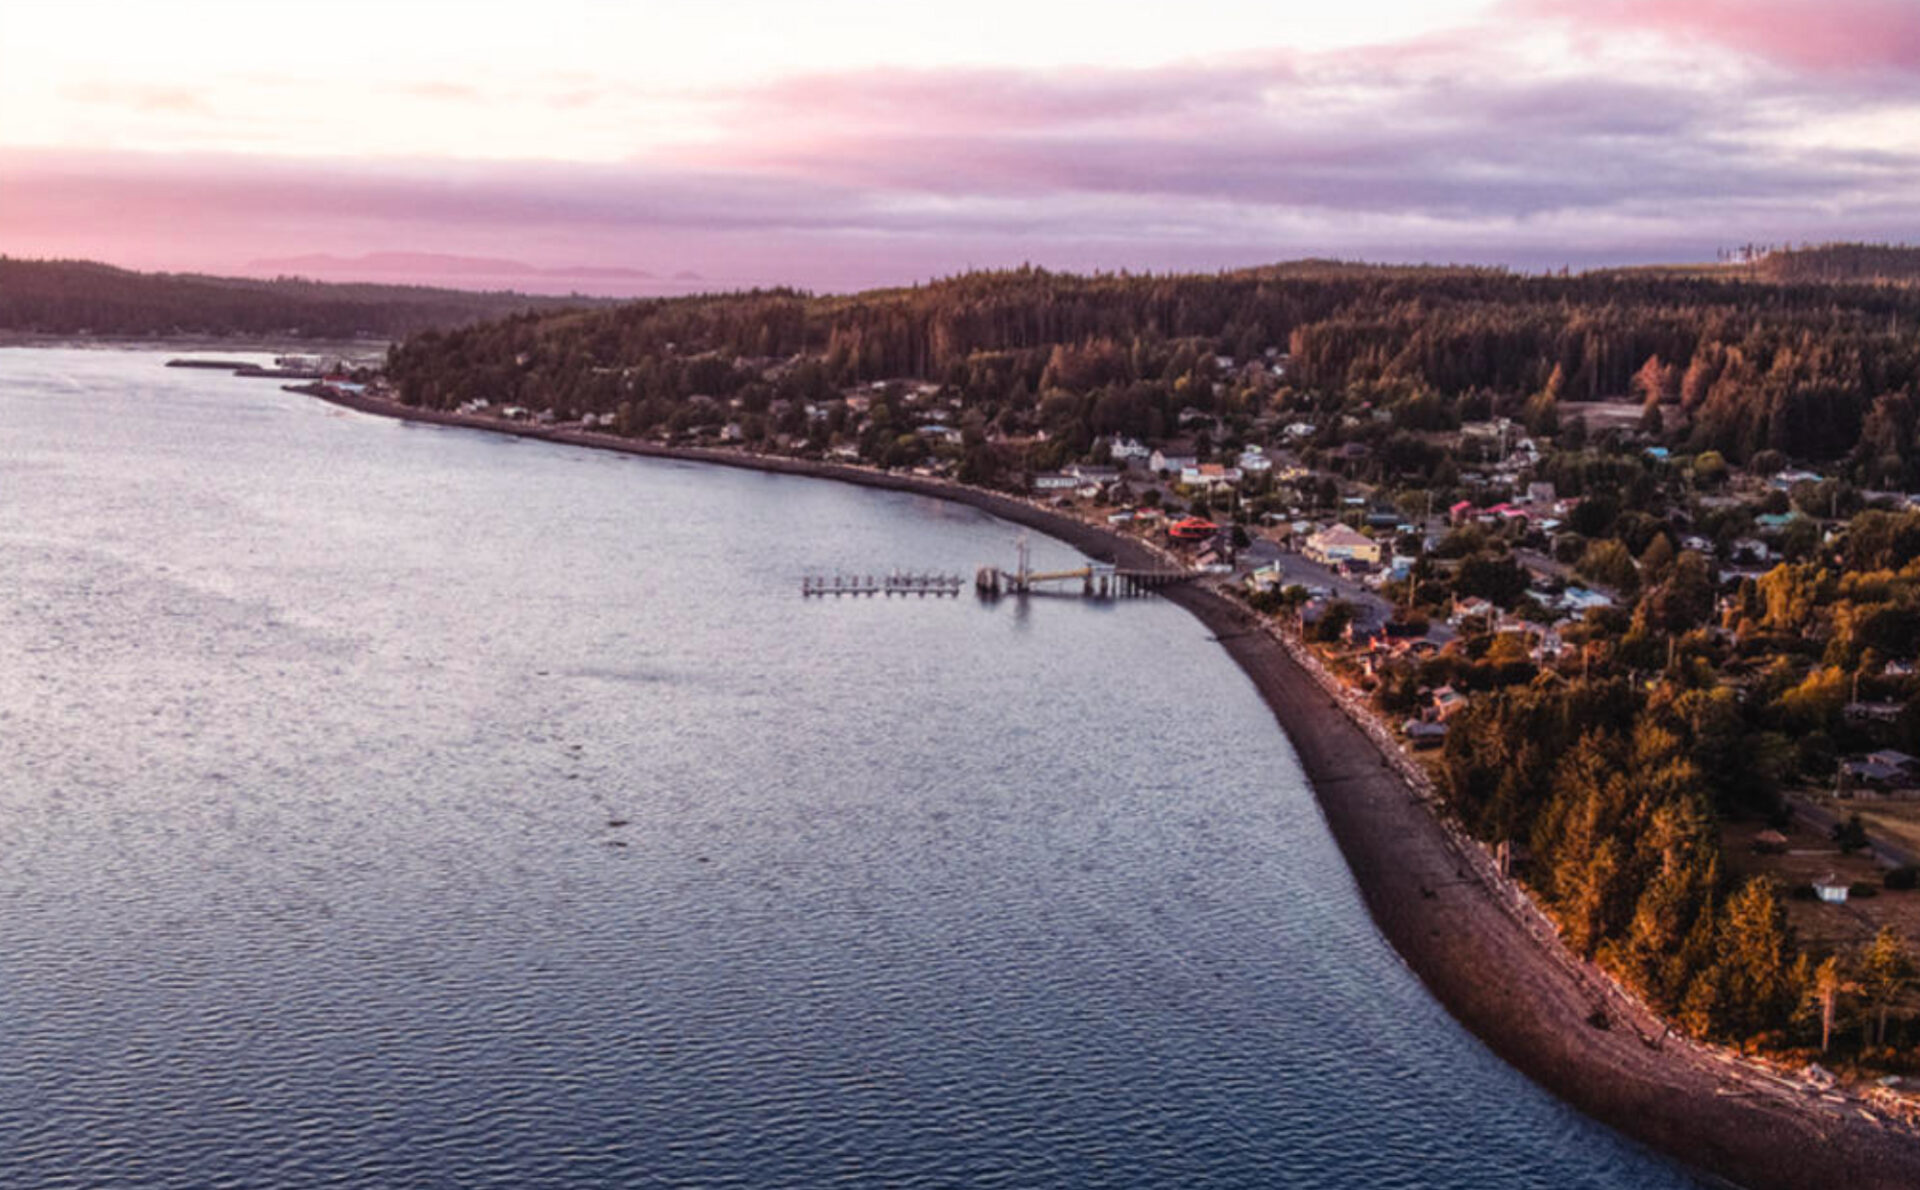 Once a utopia and booming fishing village, isolated Sointula is a peaceful weekend getaway. Photo by Daniel Hillert.